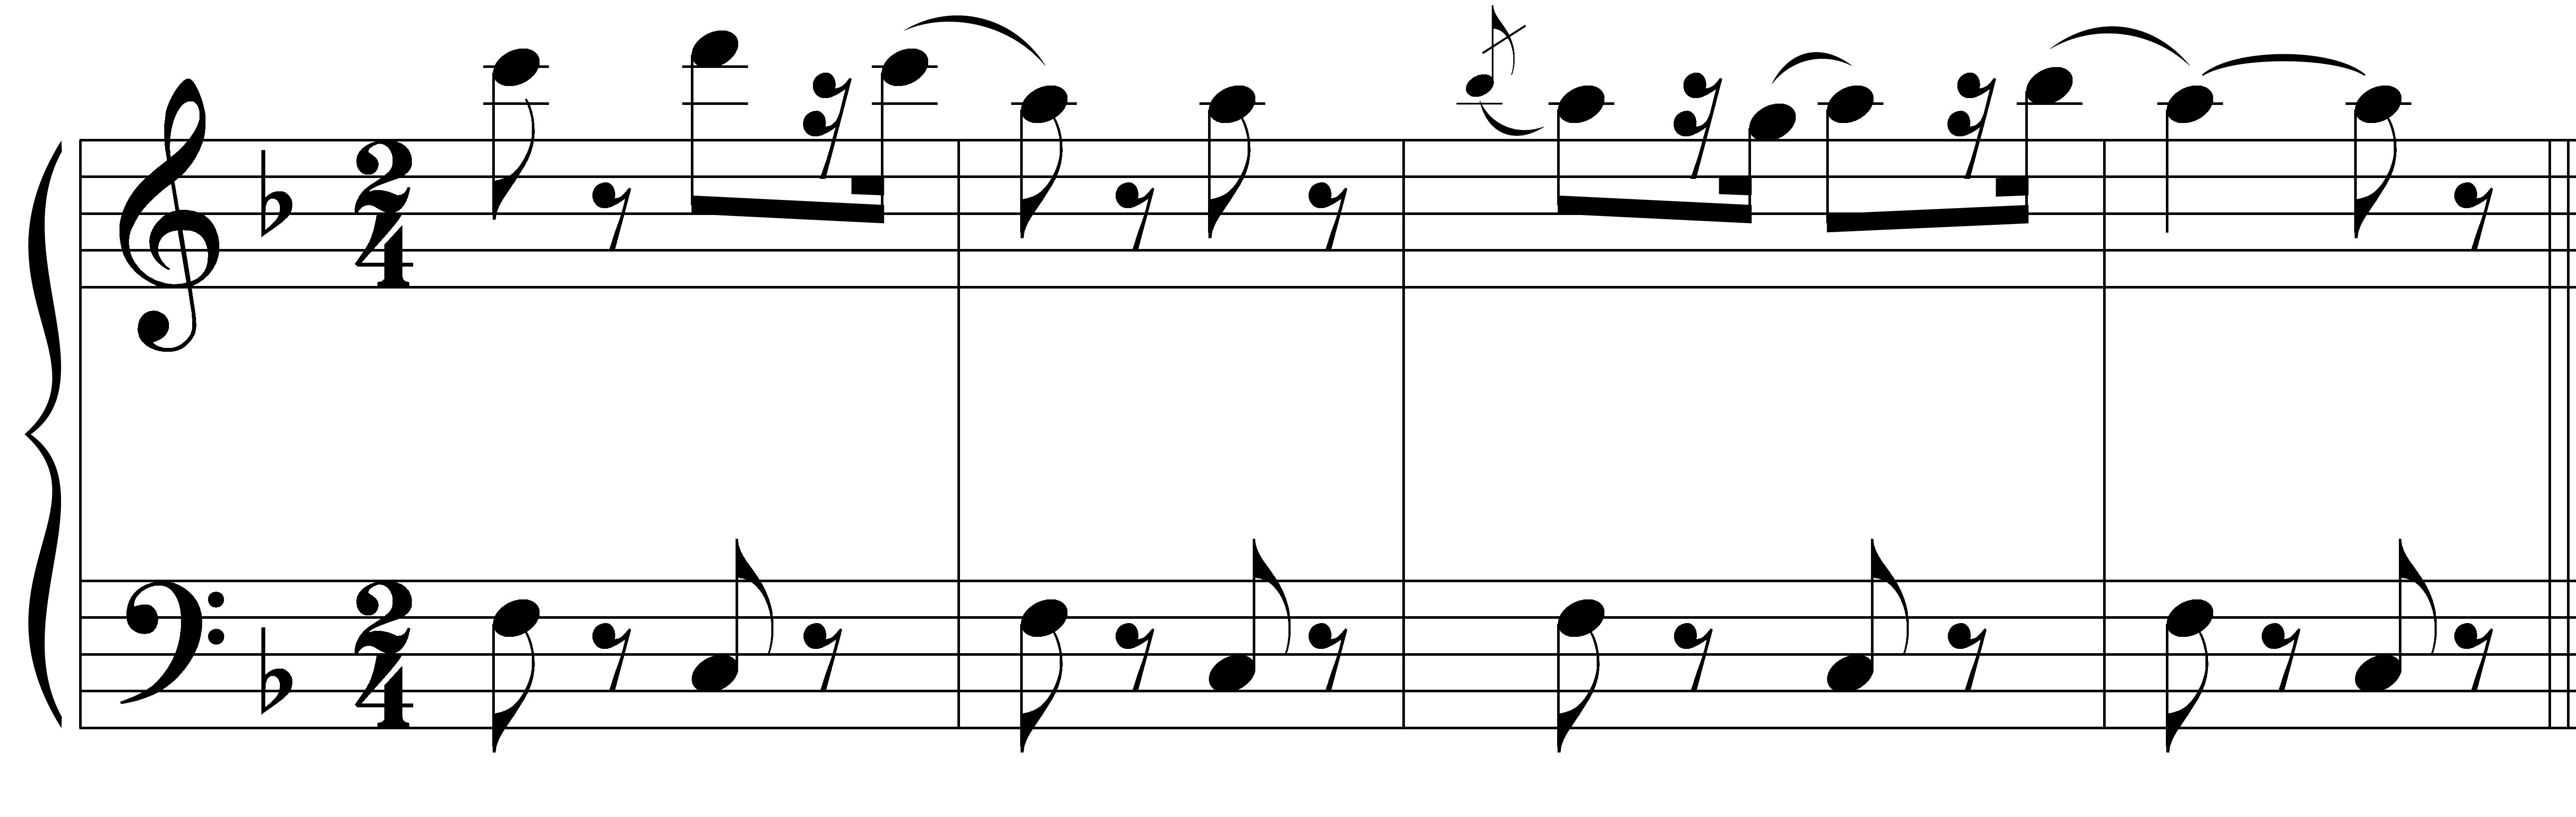 "Image of first violin and cello parts of ""Toreador Song"" from Bizet's Carmen"